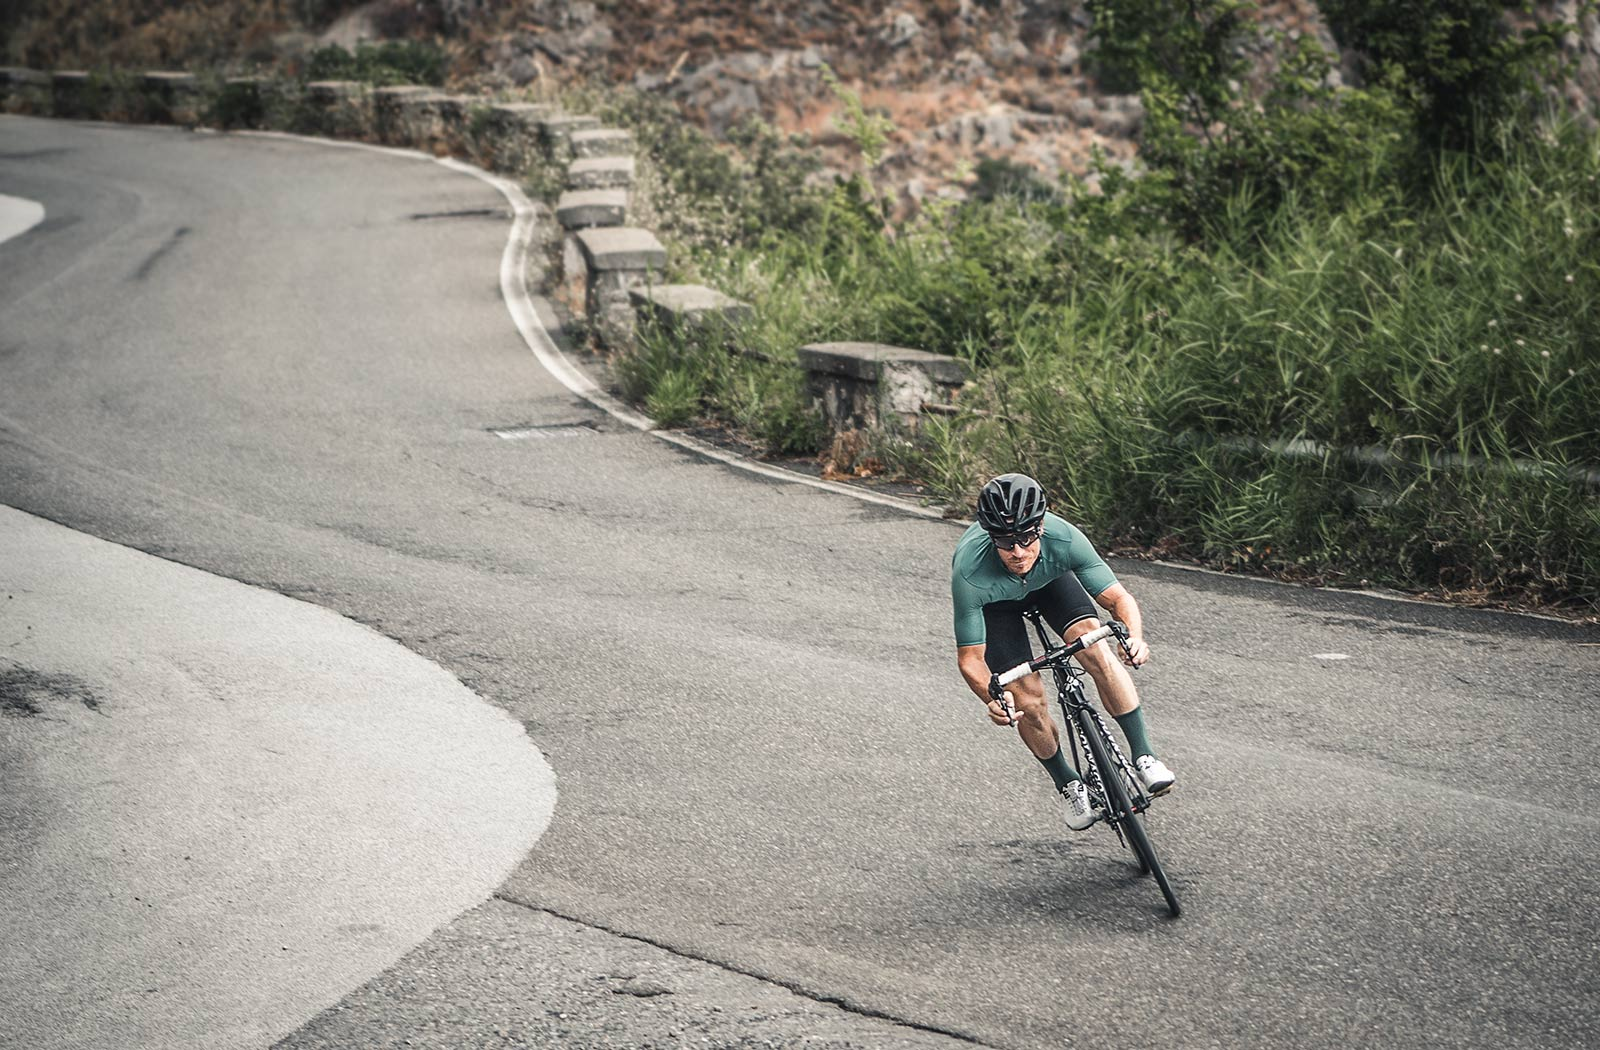 Black-road-in-isadore-racing-down-the-mountain-in-sicily